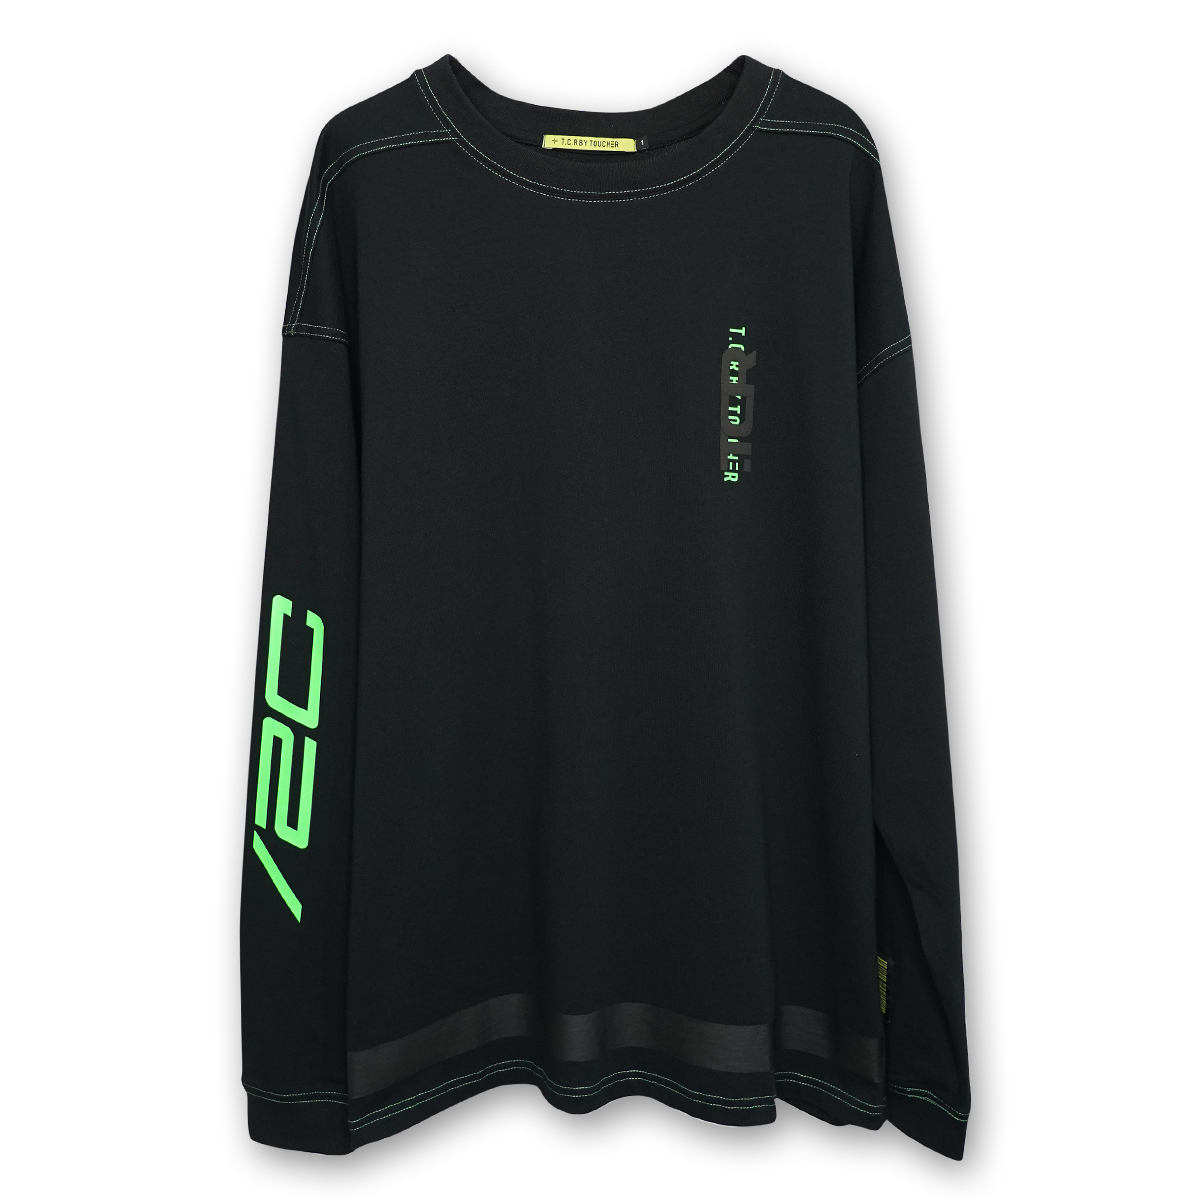 OVERSIZED SLUSH L/S TEE - BLACK/GREEN